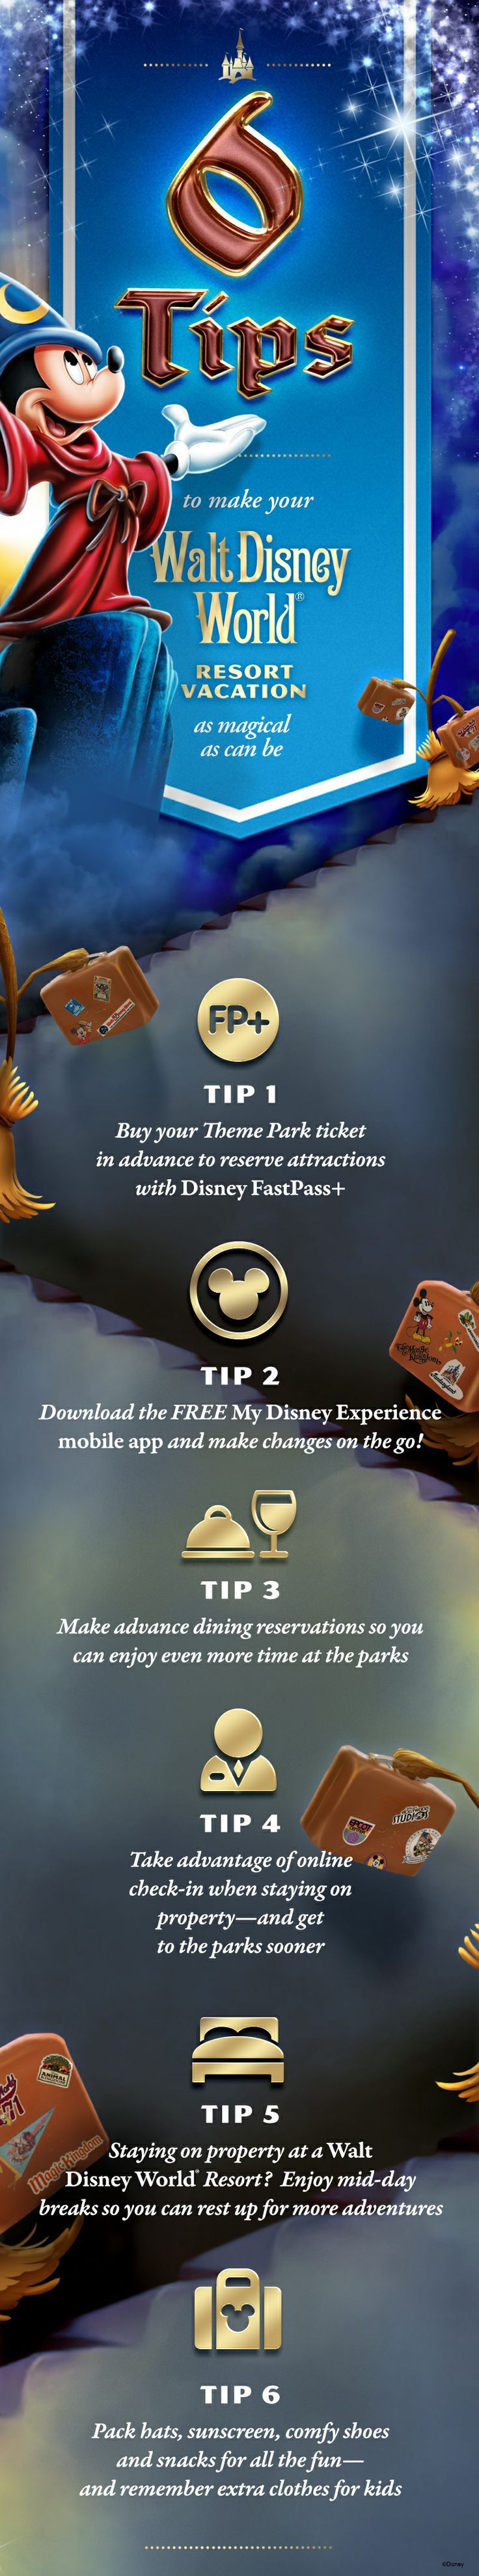 Follow these 6 tips to make your Walt Disney World Resort vacation as magical as can be!